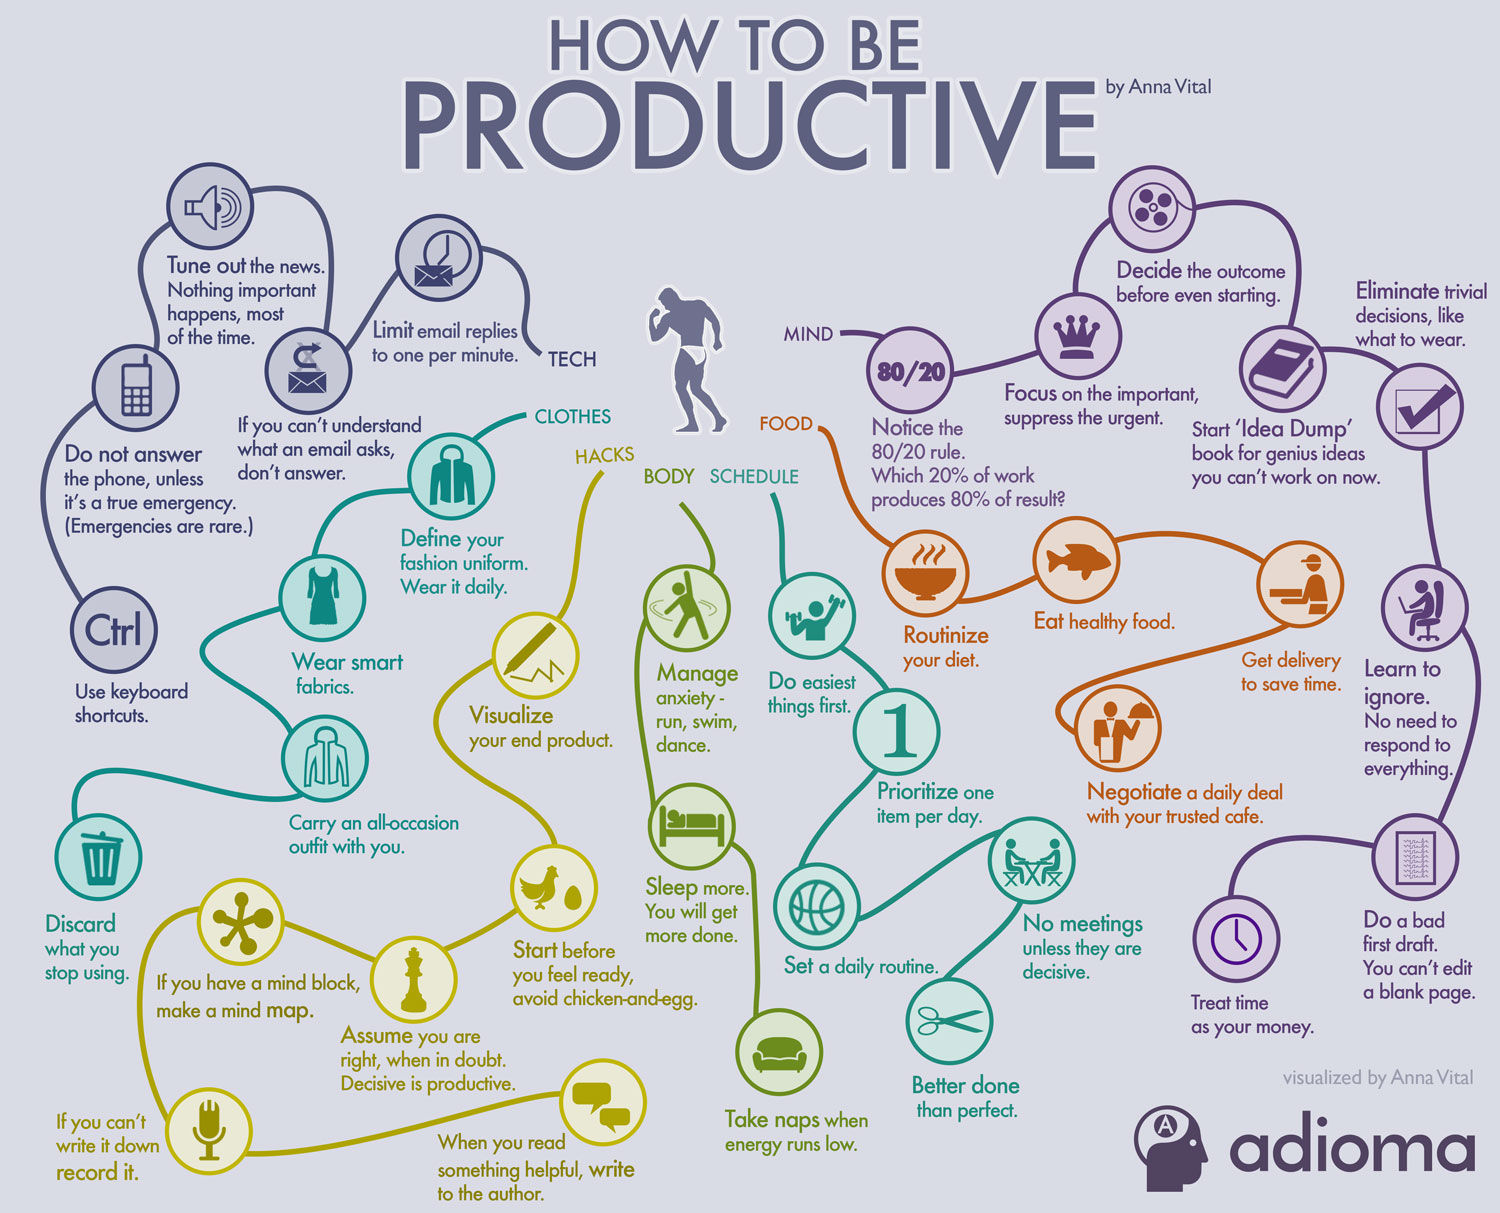 10 Great Ideas to Improve Your Productivity when You Work